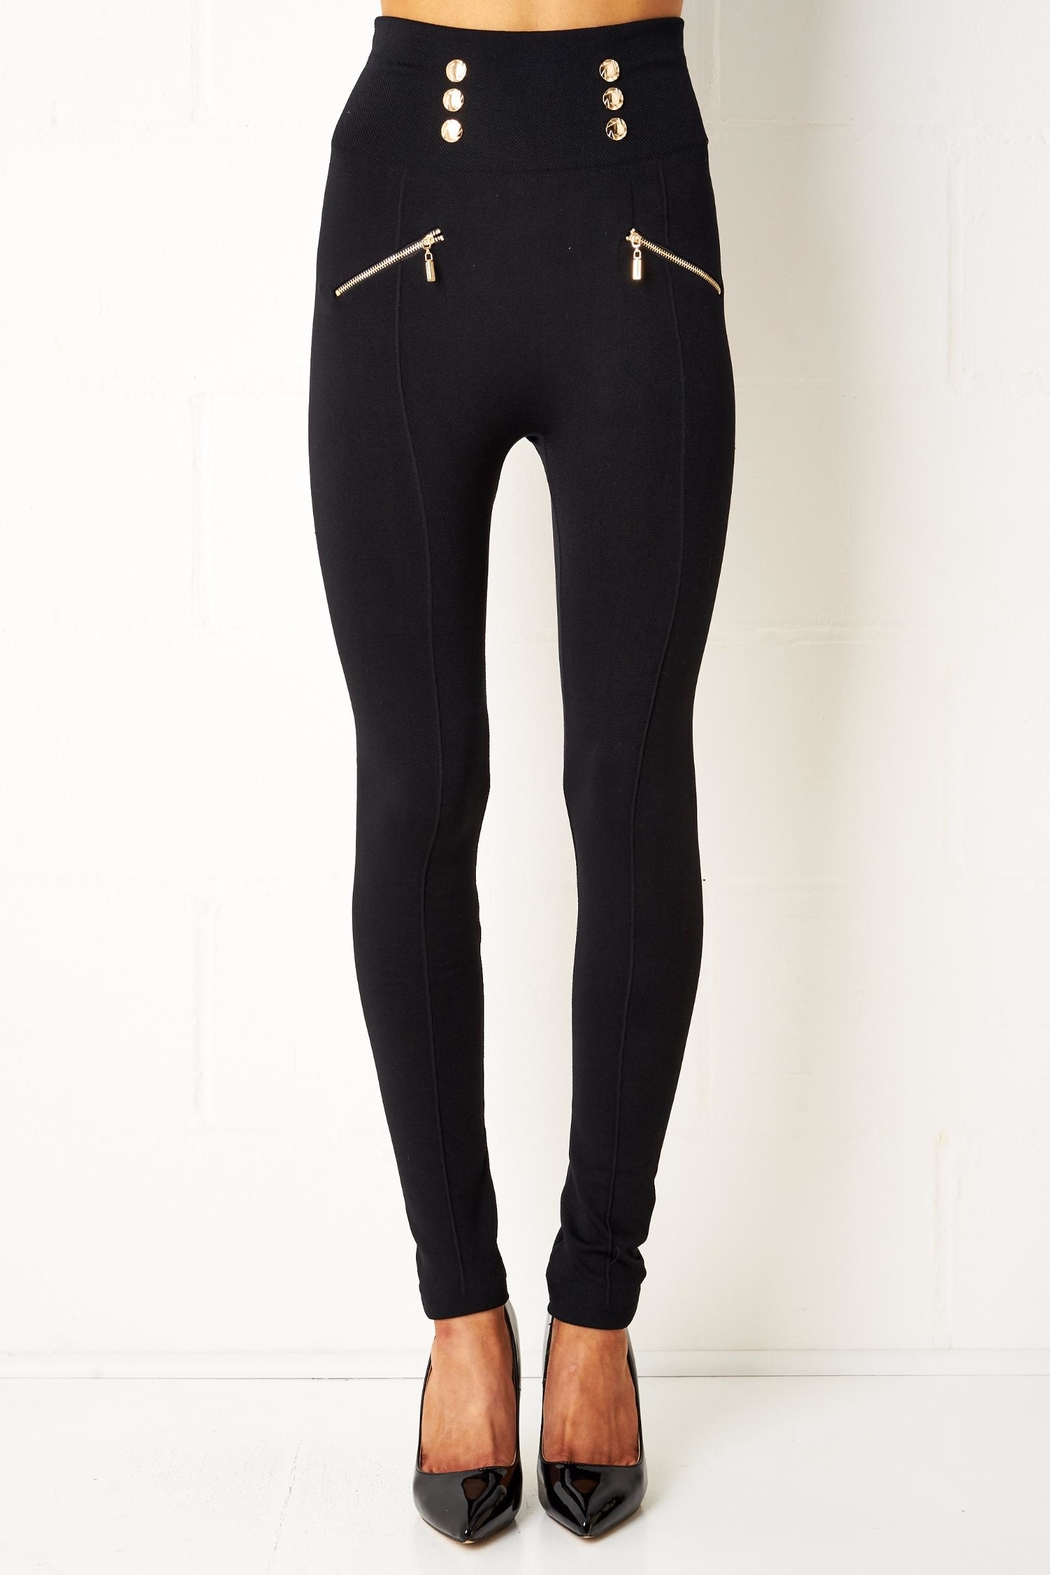 frontrow Black Gold Button Leggings - Front Cropped Image